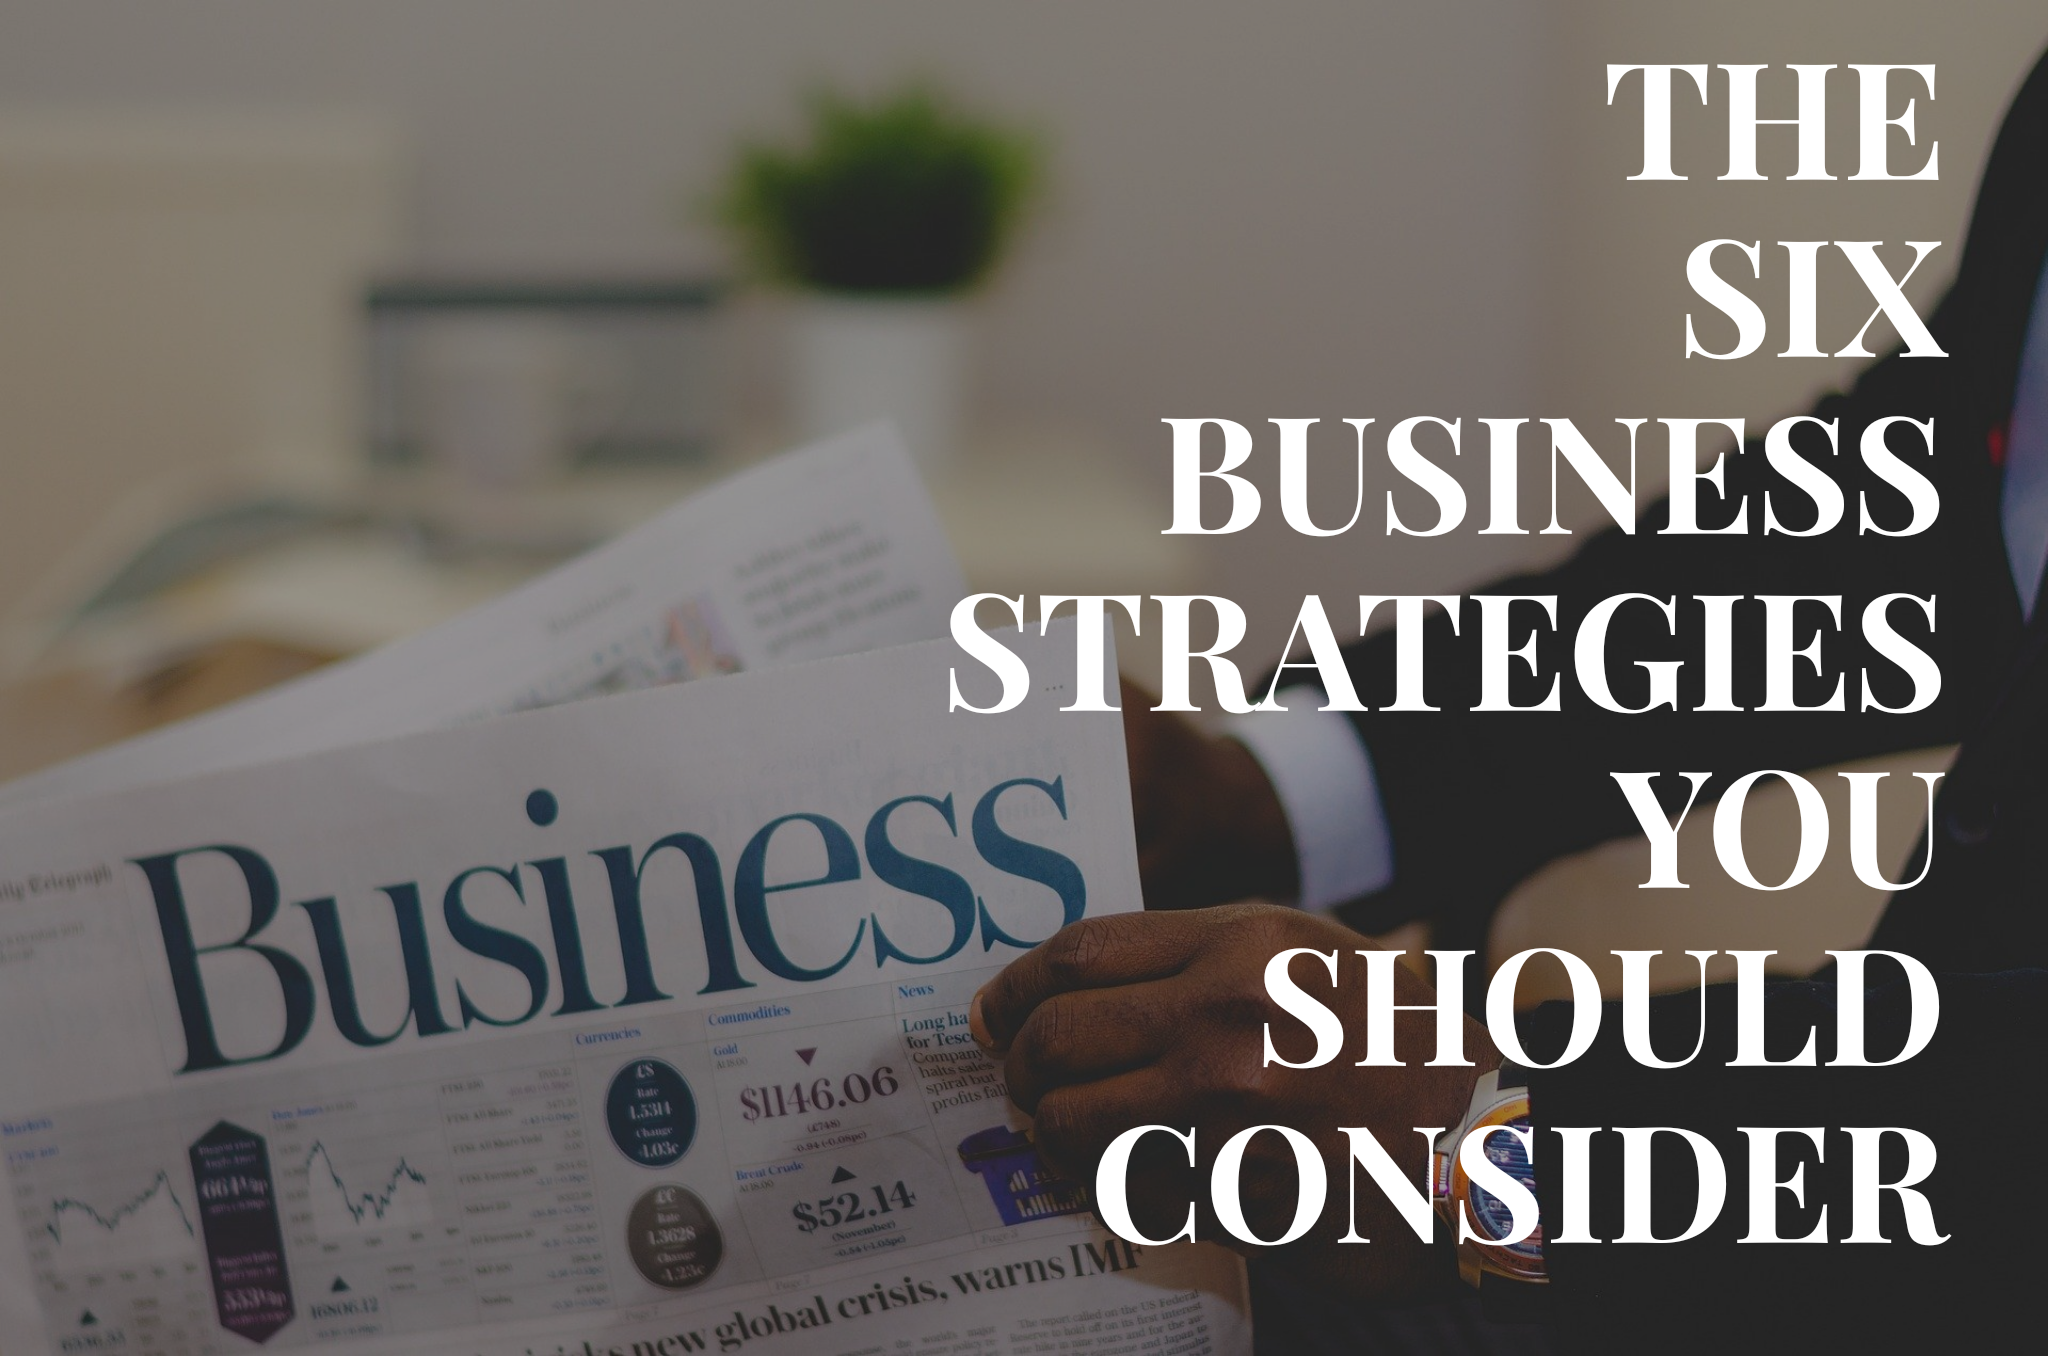 THE SIX BUSINESS STRATEGIES YOU SHOULD CONSIDER